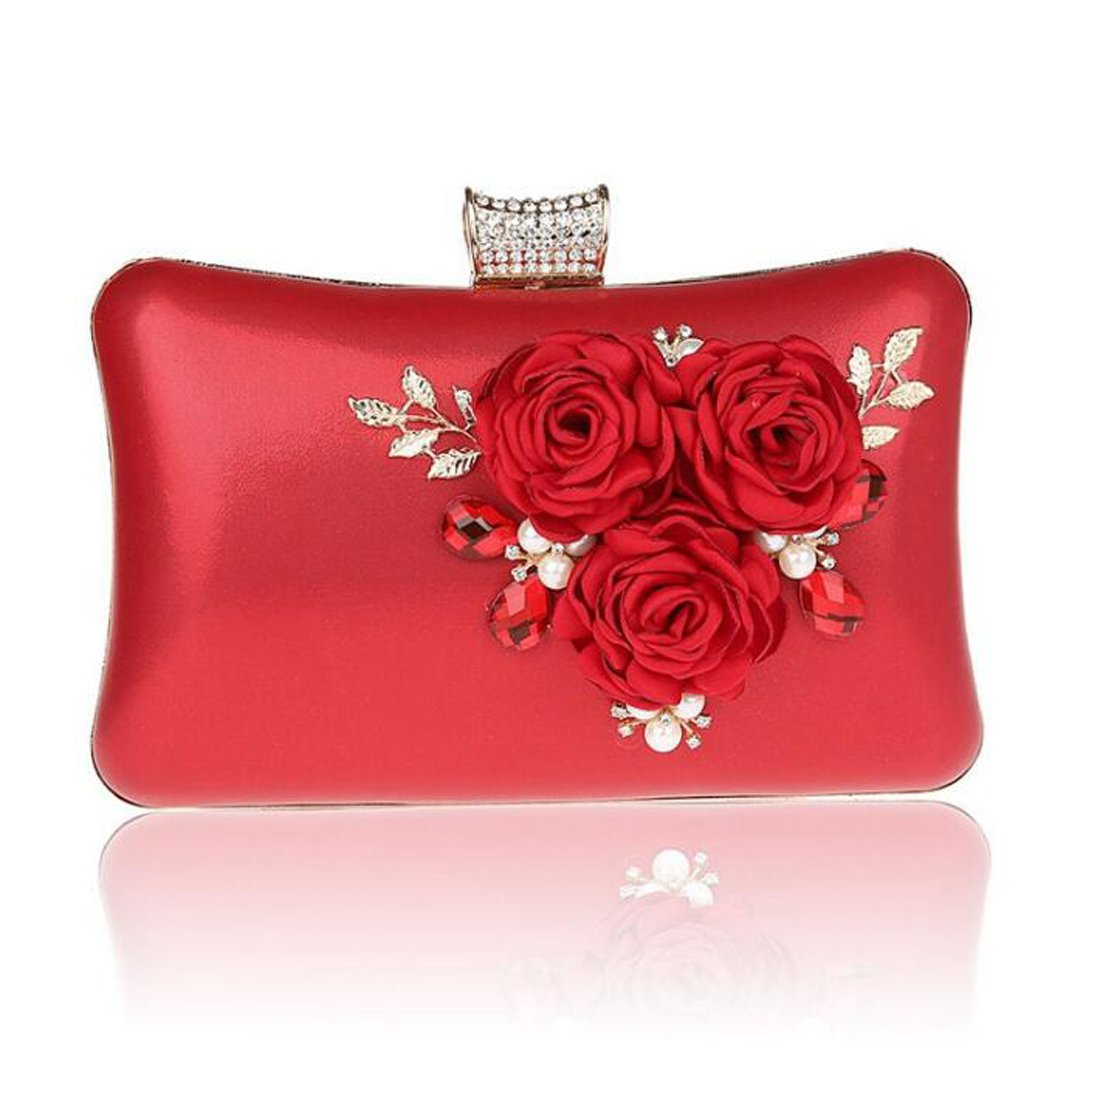 EPLAZA Women Large Capacity Flora Evening Clutch Bags Wedding Party Purse Handbags Wallet (red)